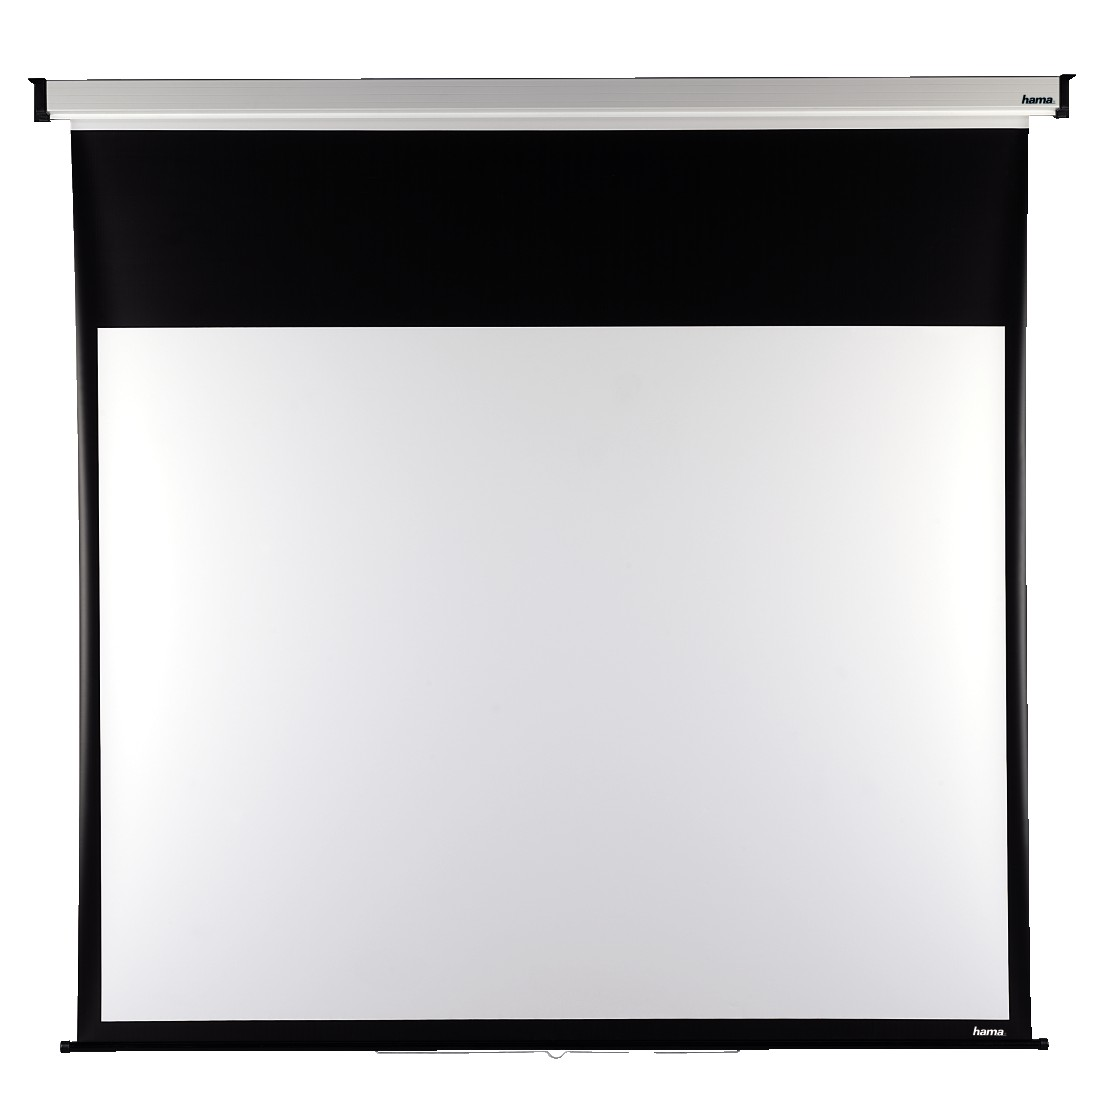 abx High-Res Image - Hama, Roller Projection Screen, 180 x 160 cm, 4:3